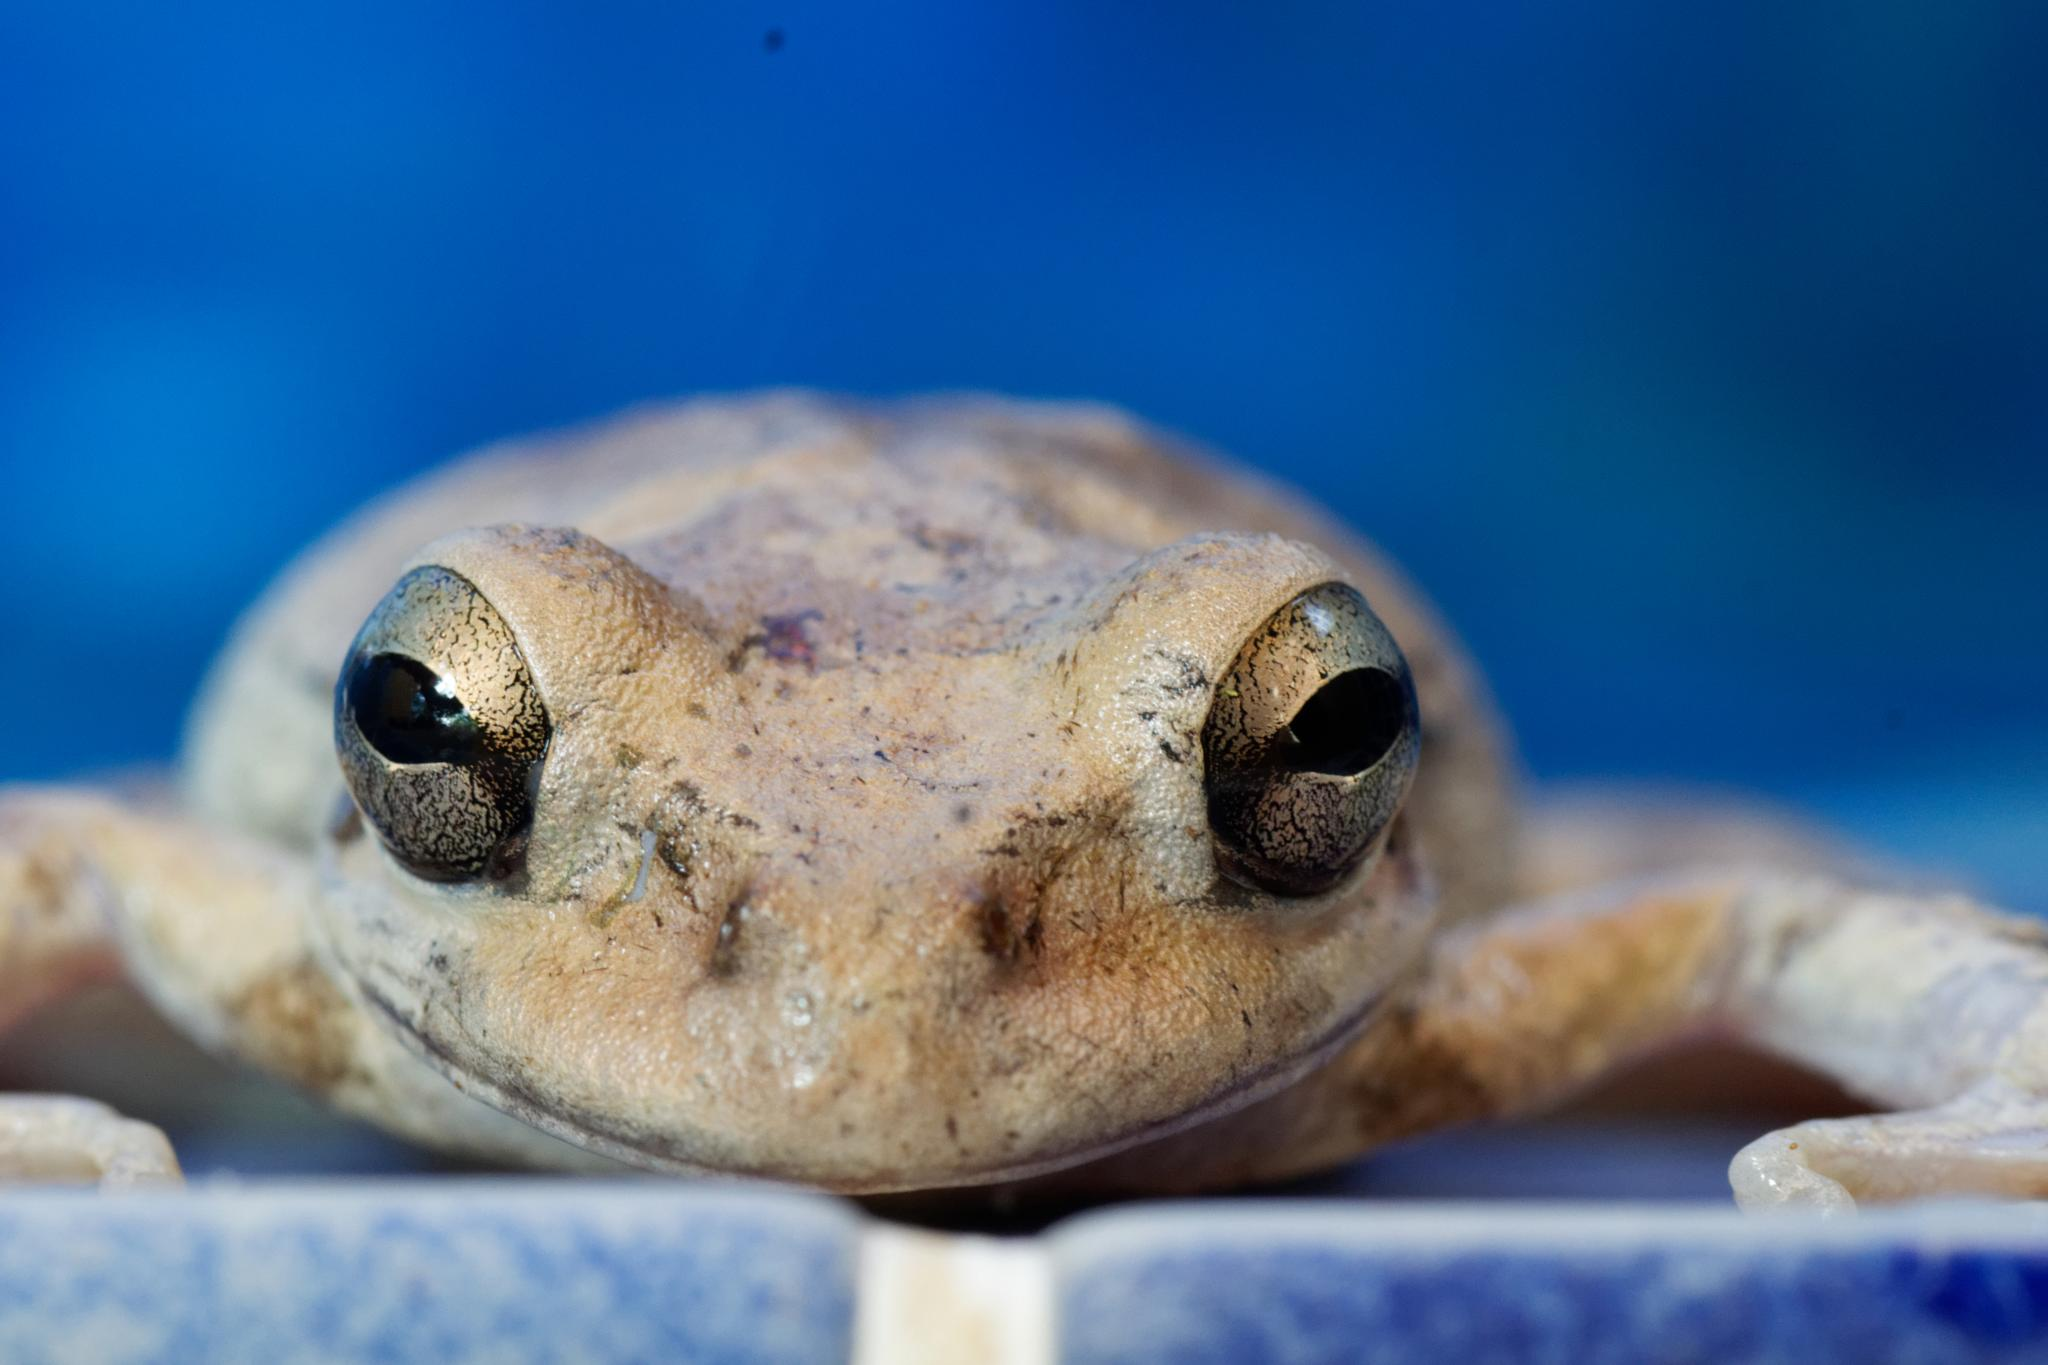 Smiling frog by Scottelb